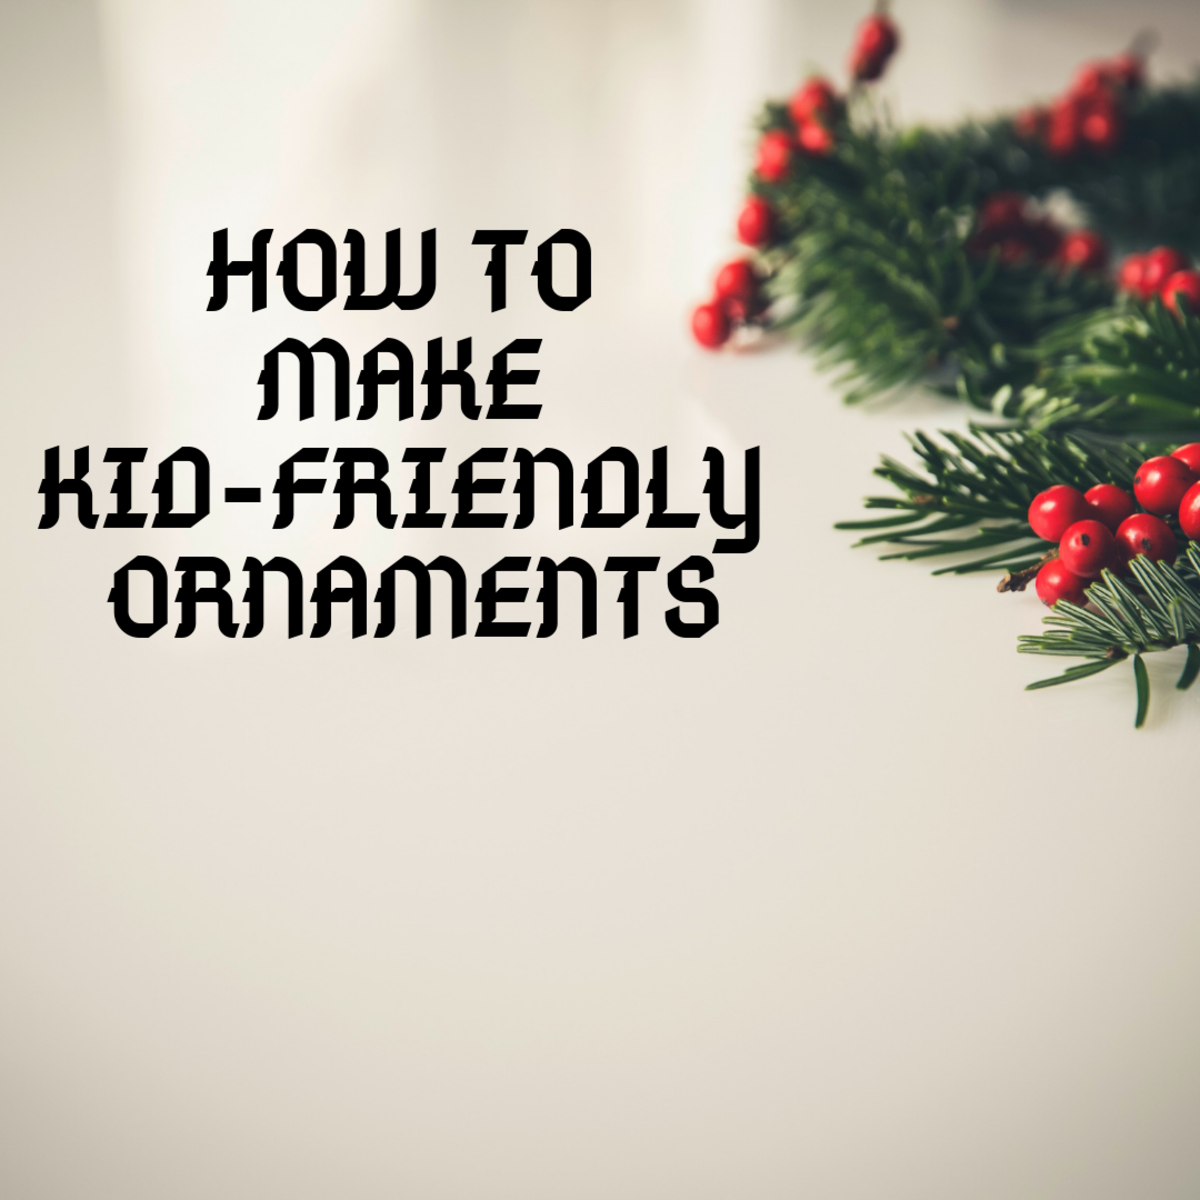 How to Make Kid-Friendly 3D Ornaments